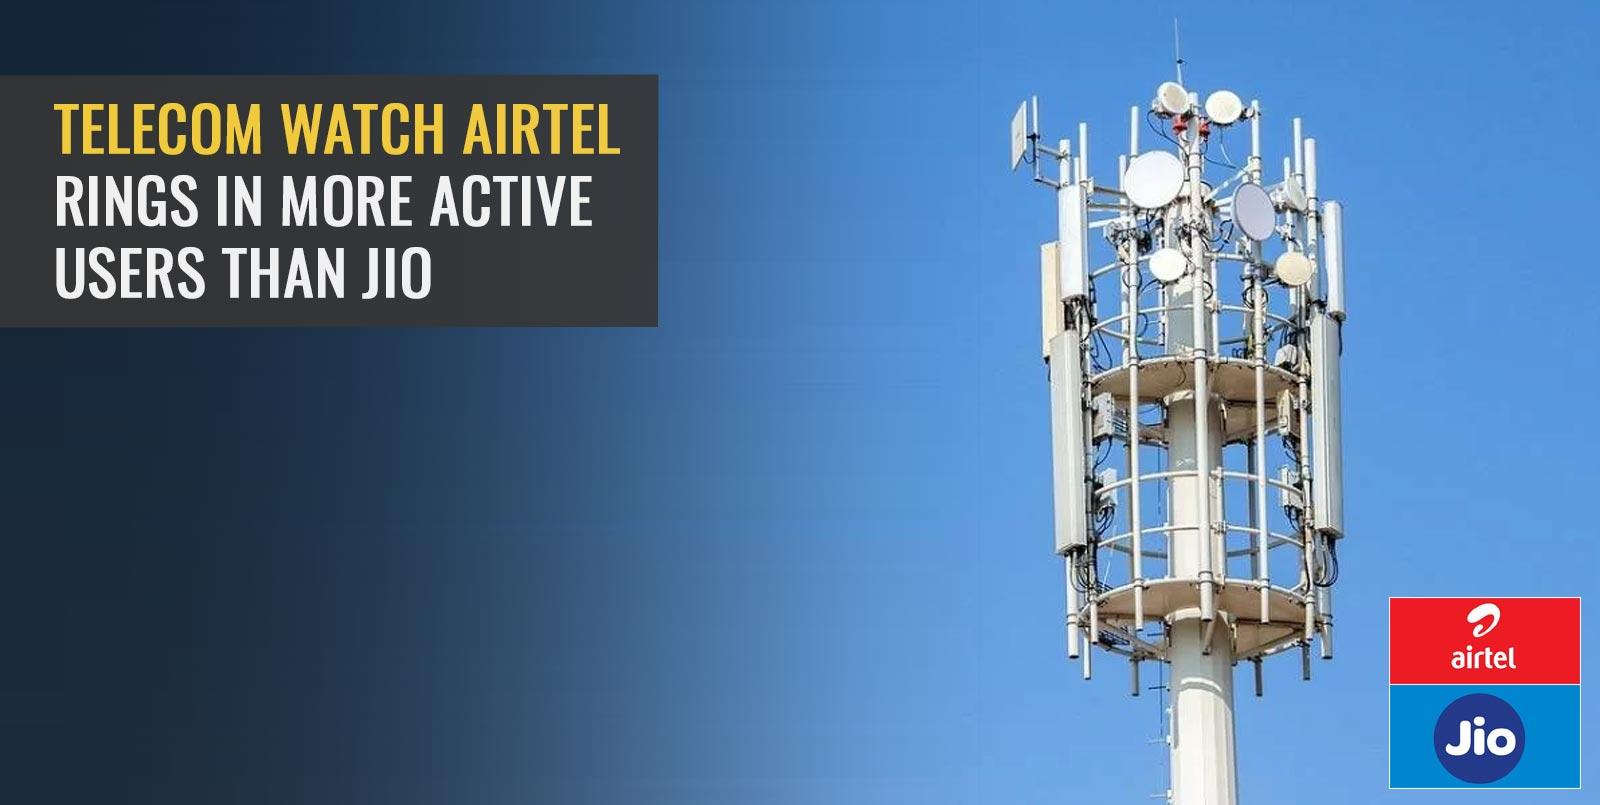 Telecom watch: Airtel rings in more active users than Jio